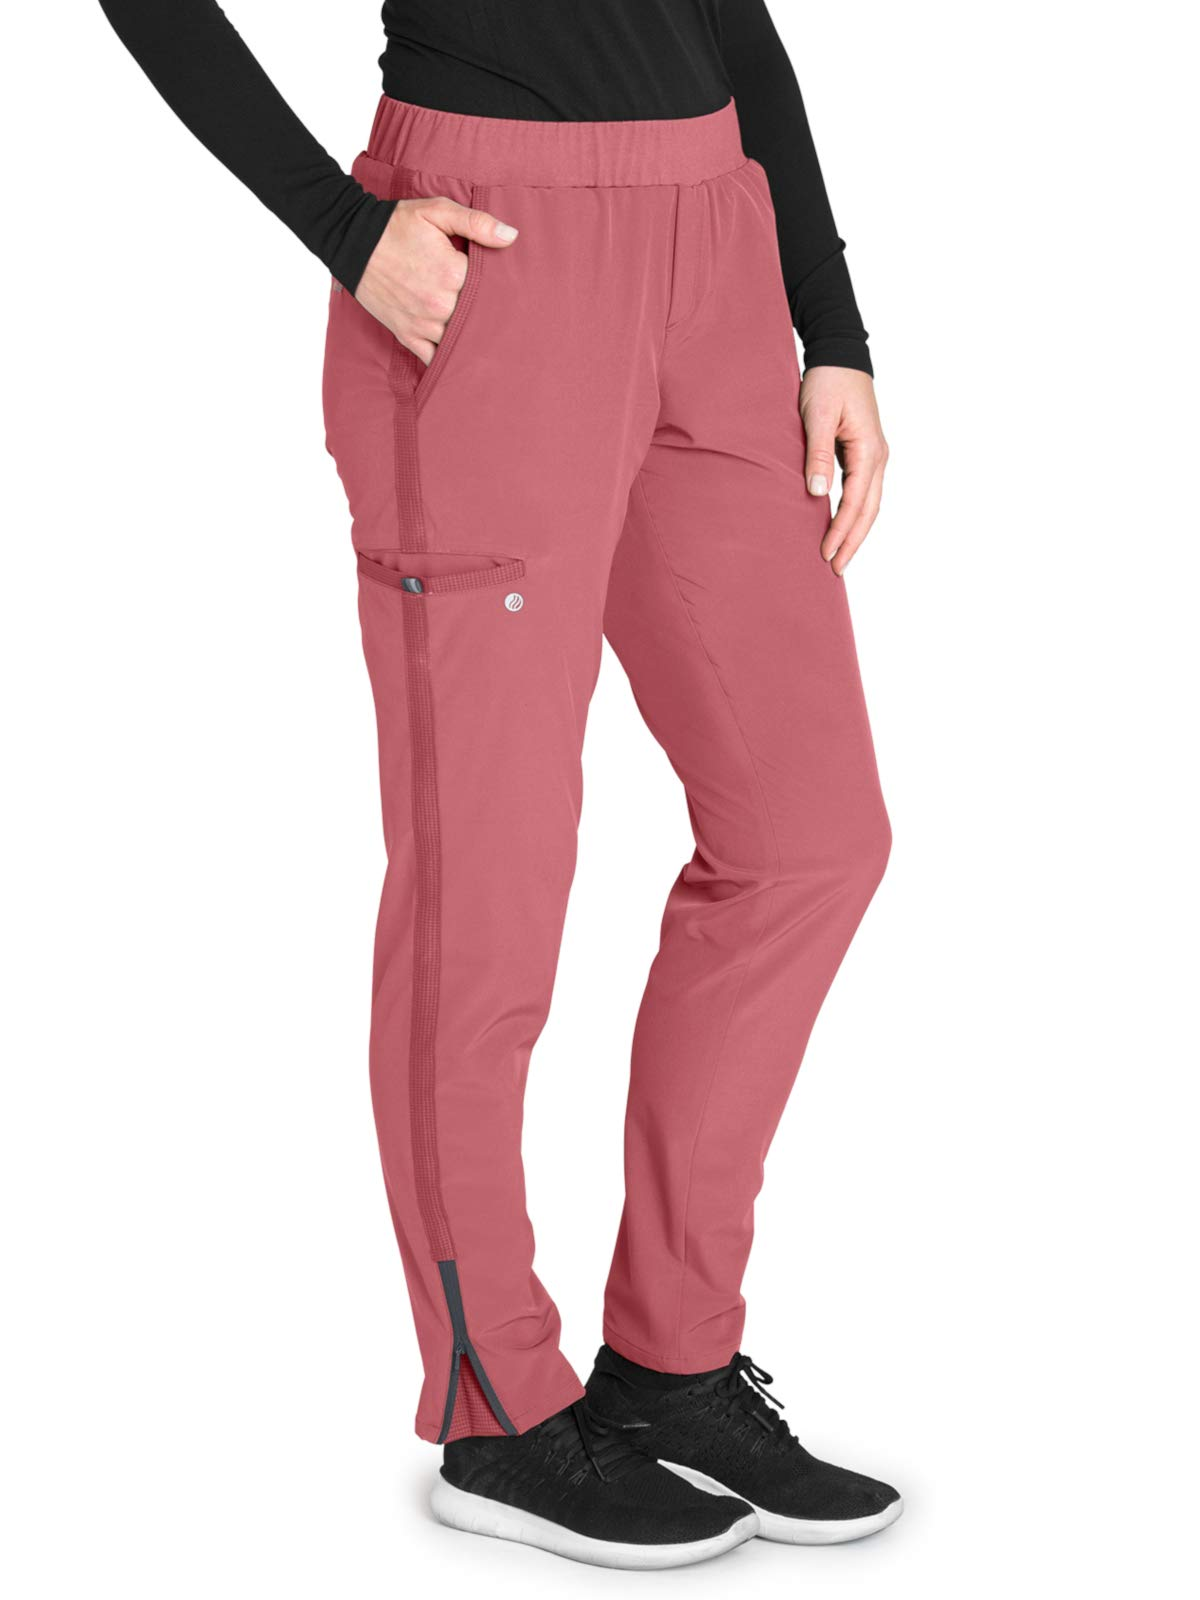 BARCO One Wellness 5-Pocket Cargo Pant for Women - Stretch Medical Scrub Pant